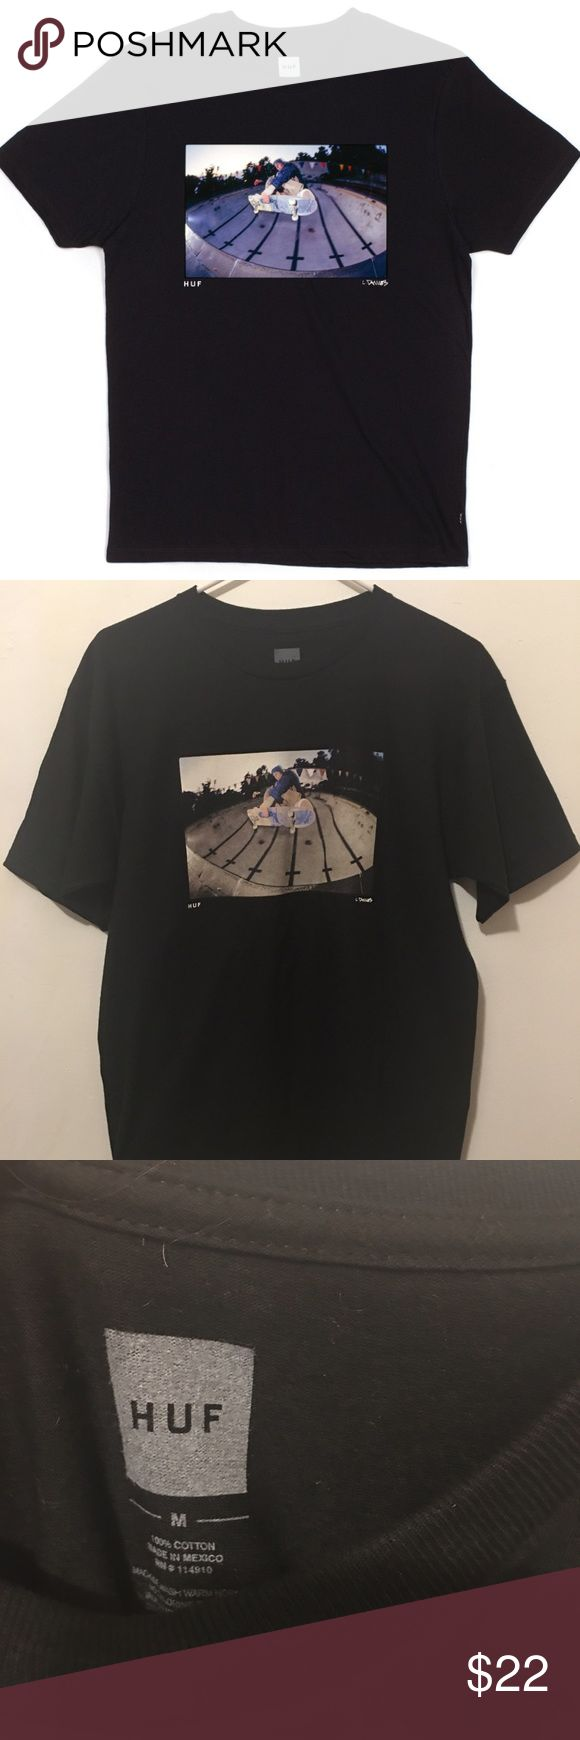 New HUF x Lance Dawes black tee shirt M New HUF x Lance Dawes Ben Liversedge black skate tee shirt.   Men's size Medium  Color: black HUF Shirts Tees - Short Sleeve